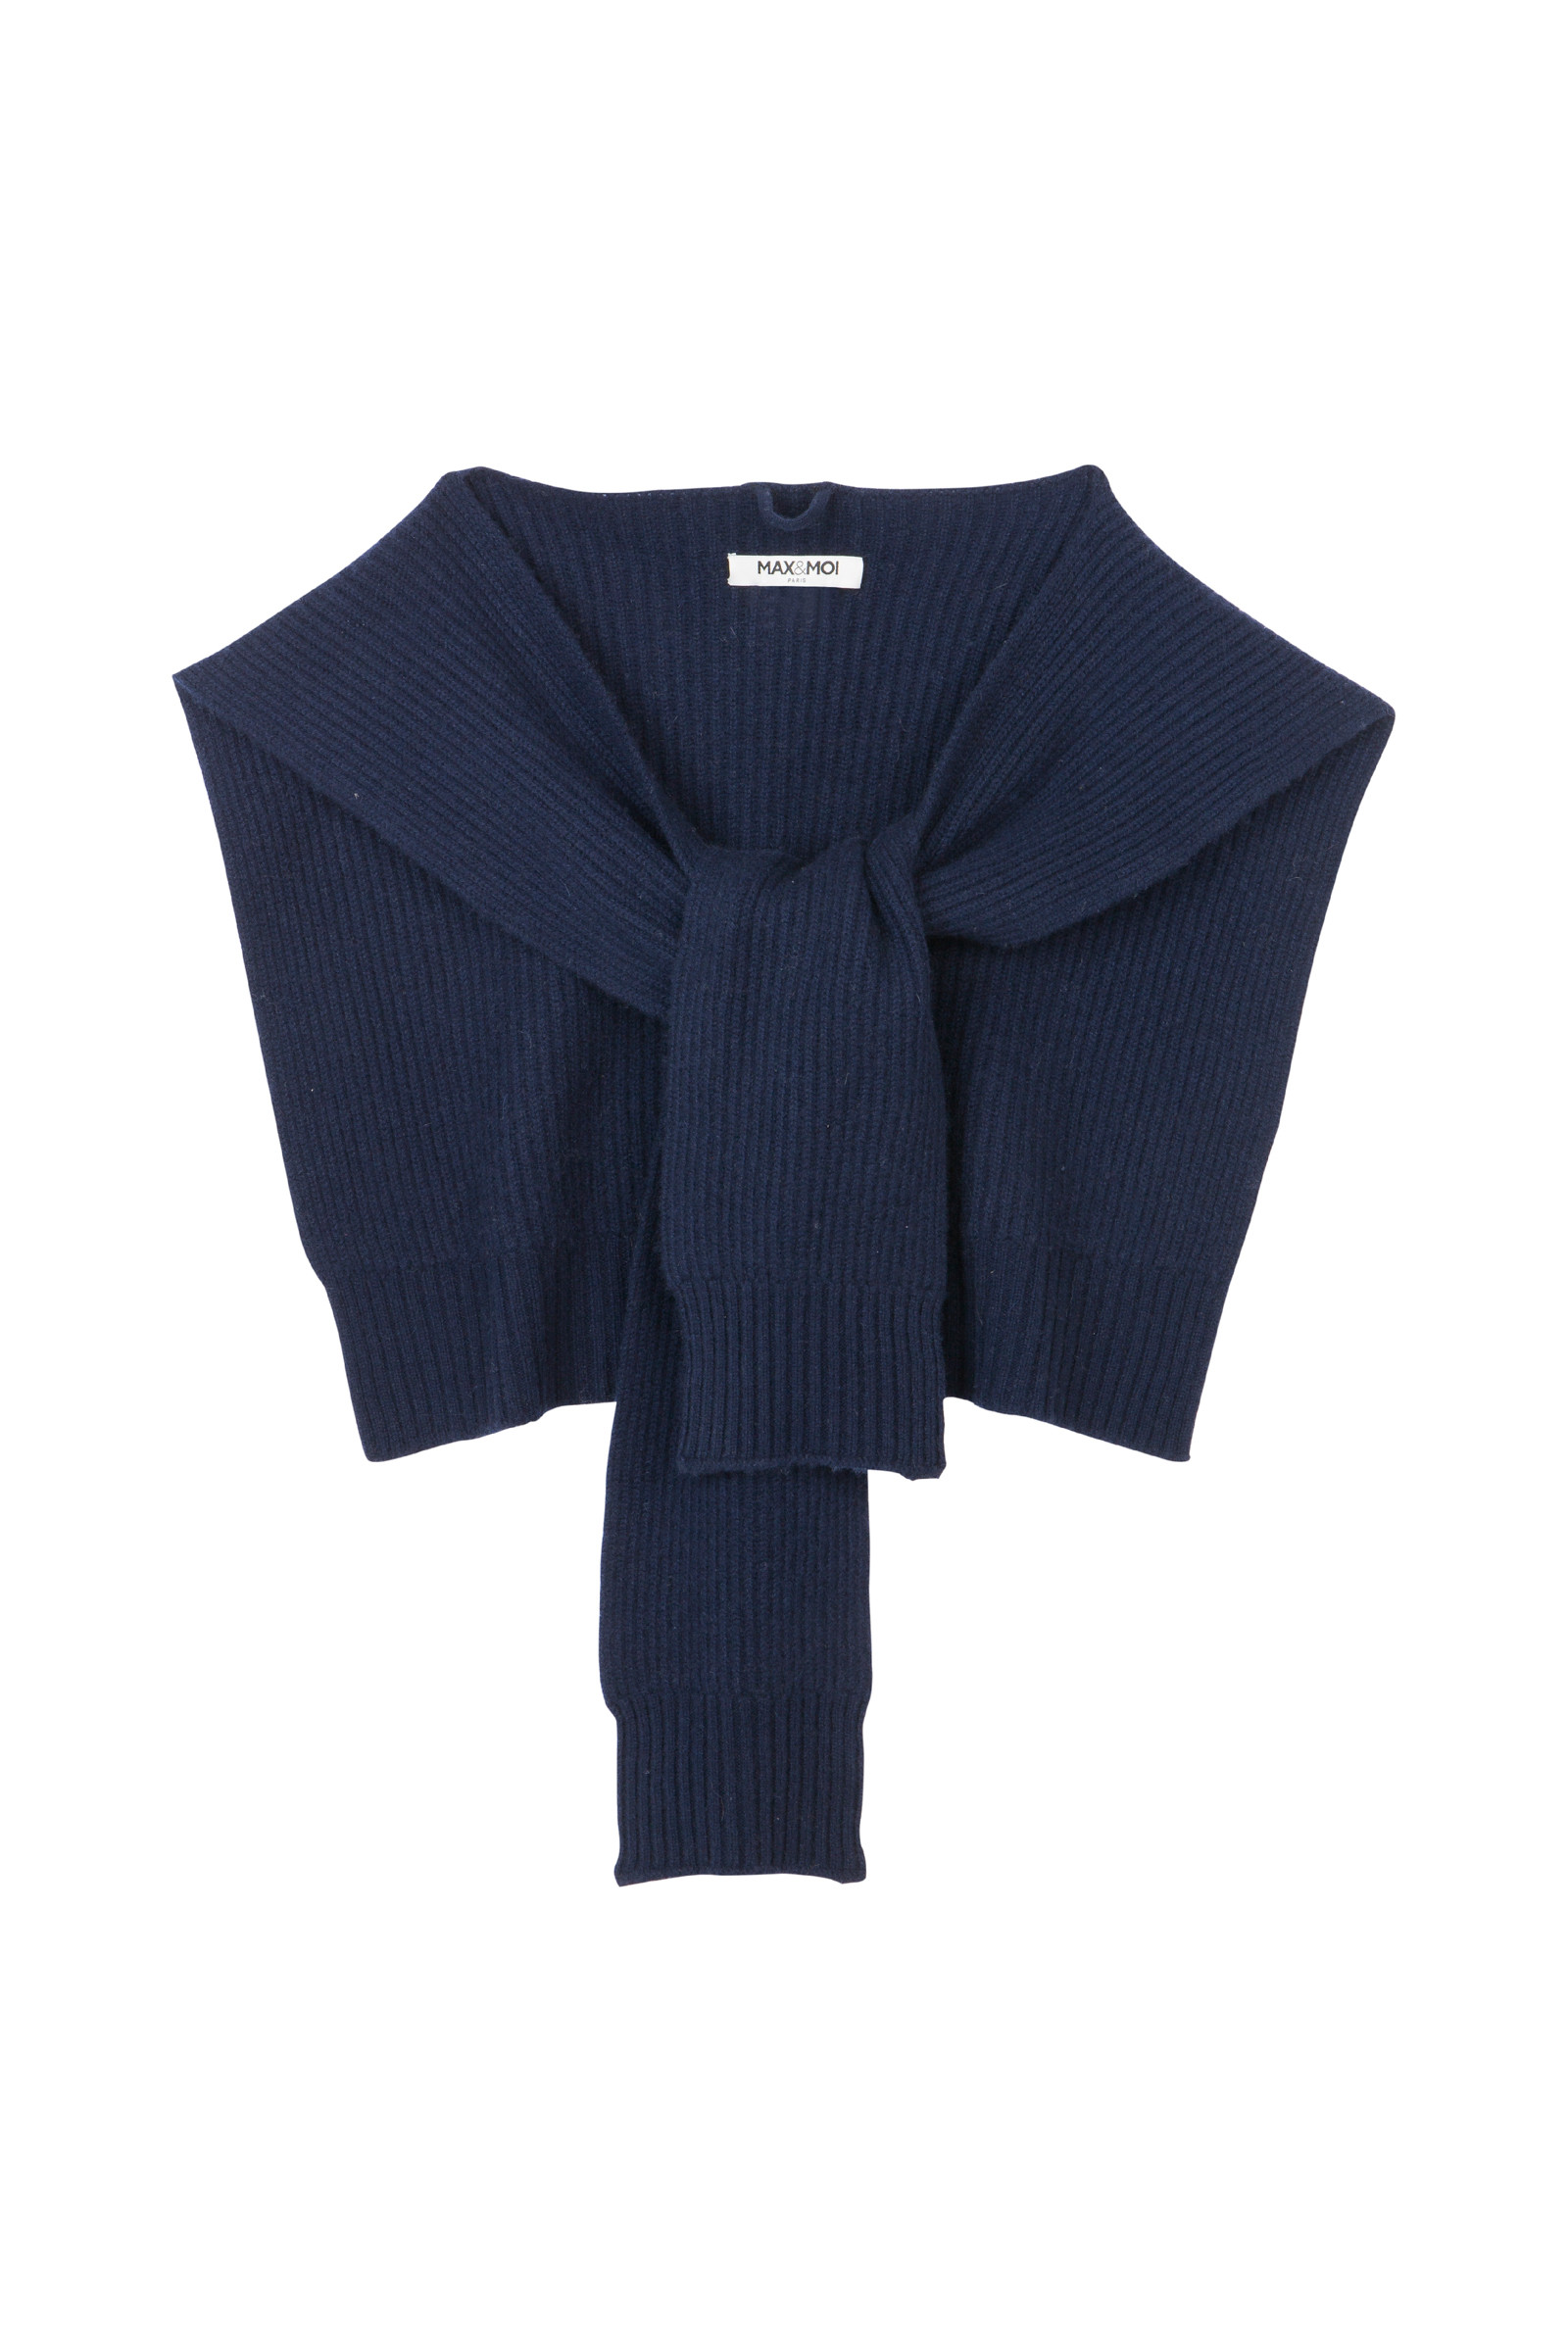 KNITTED SHAWL IN JERSEY KNIT AMORY  NAVY